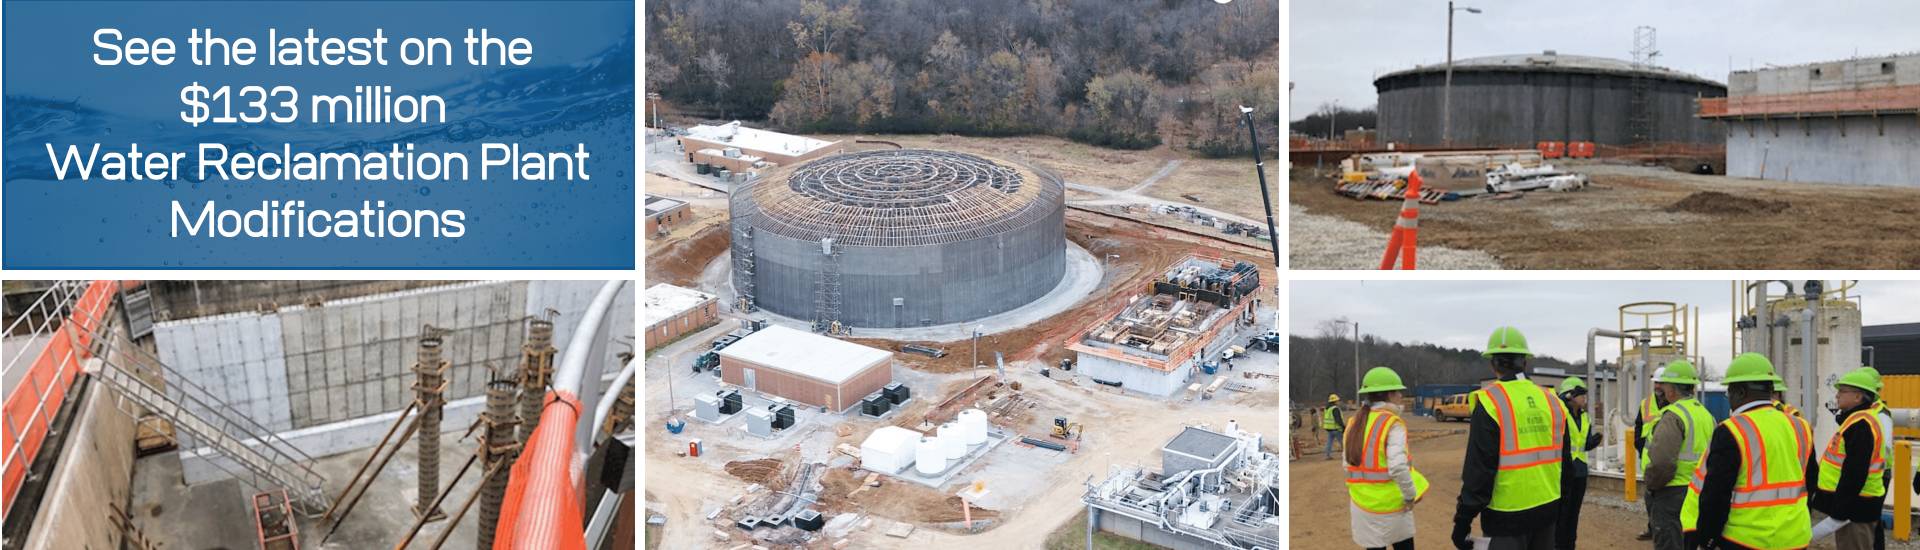 See Updates happening at the Water Reclamation Plant Graphic